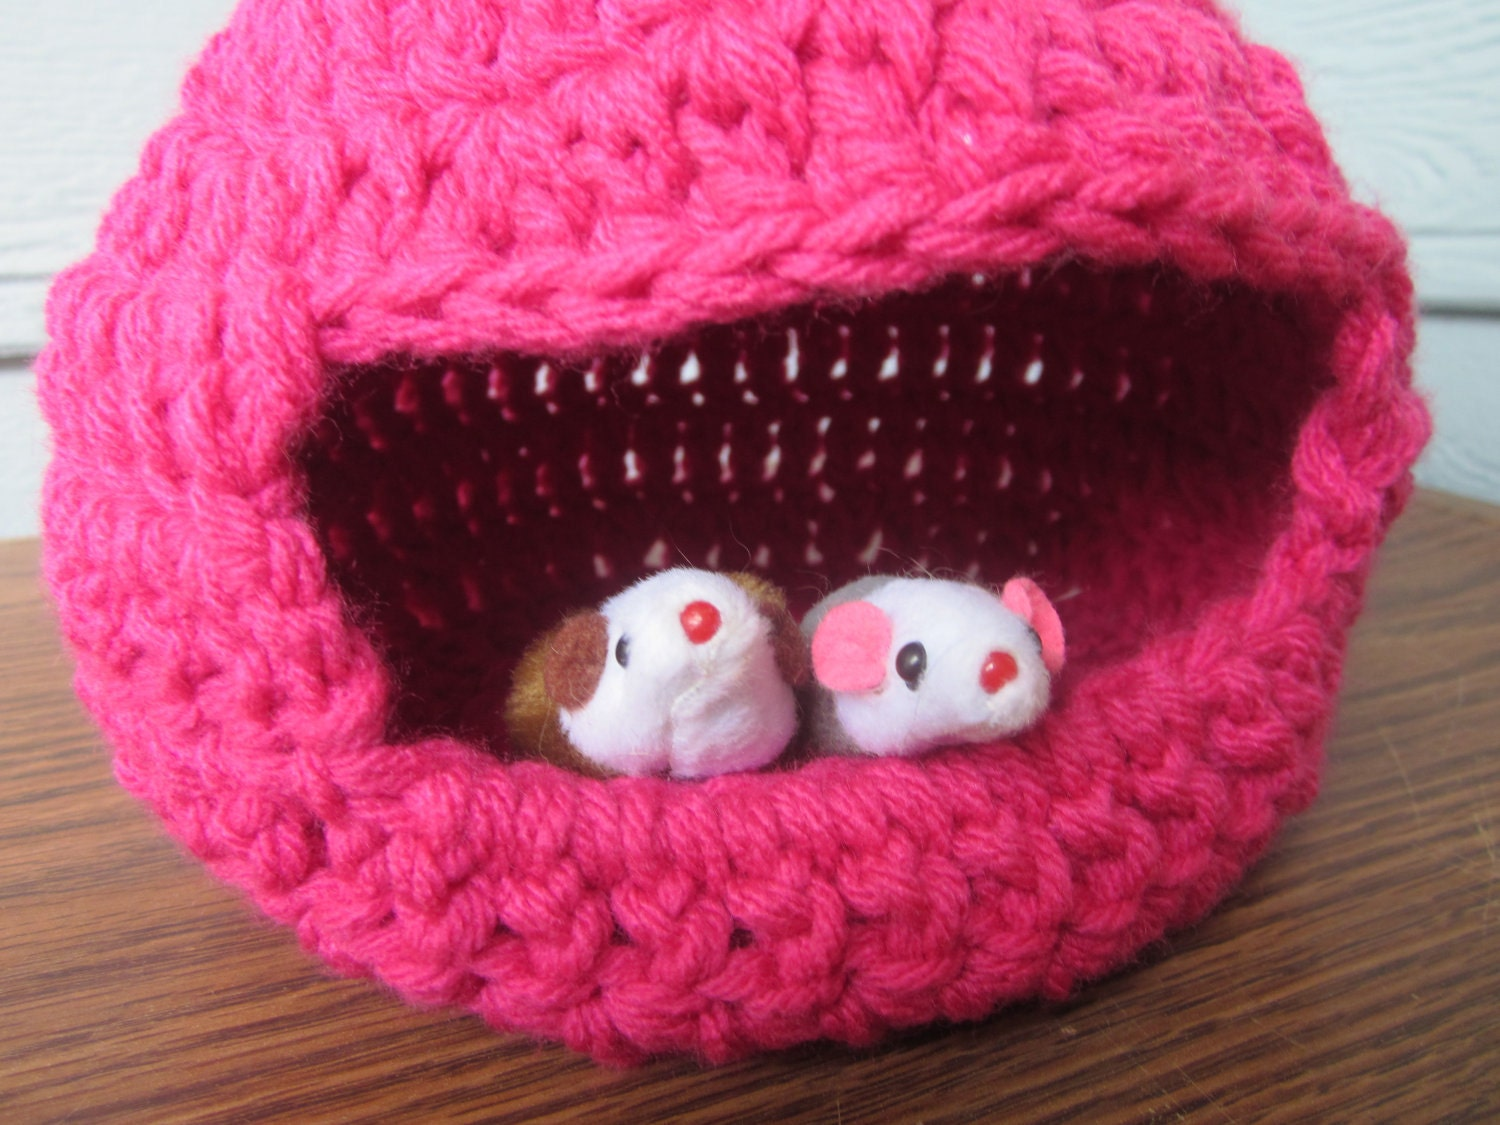 Crochet Patterns Pets : PAMPERED PETS CROCHET BED PATTERN BOOK - Easy Crochet Patterns